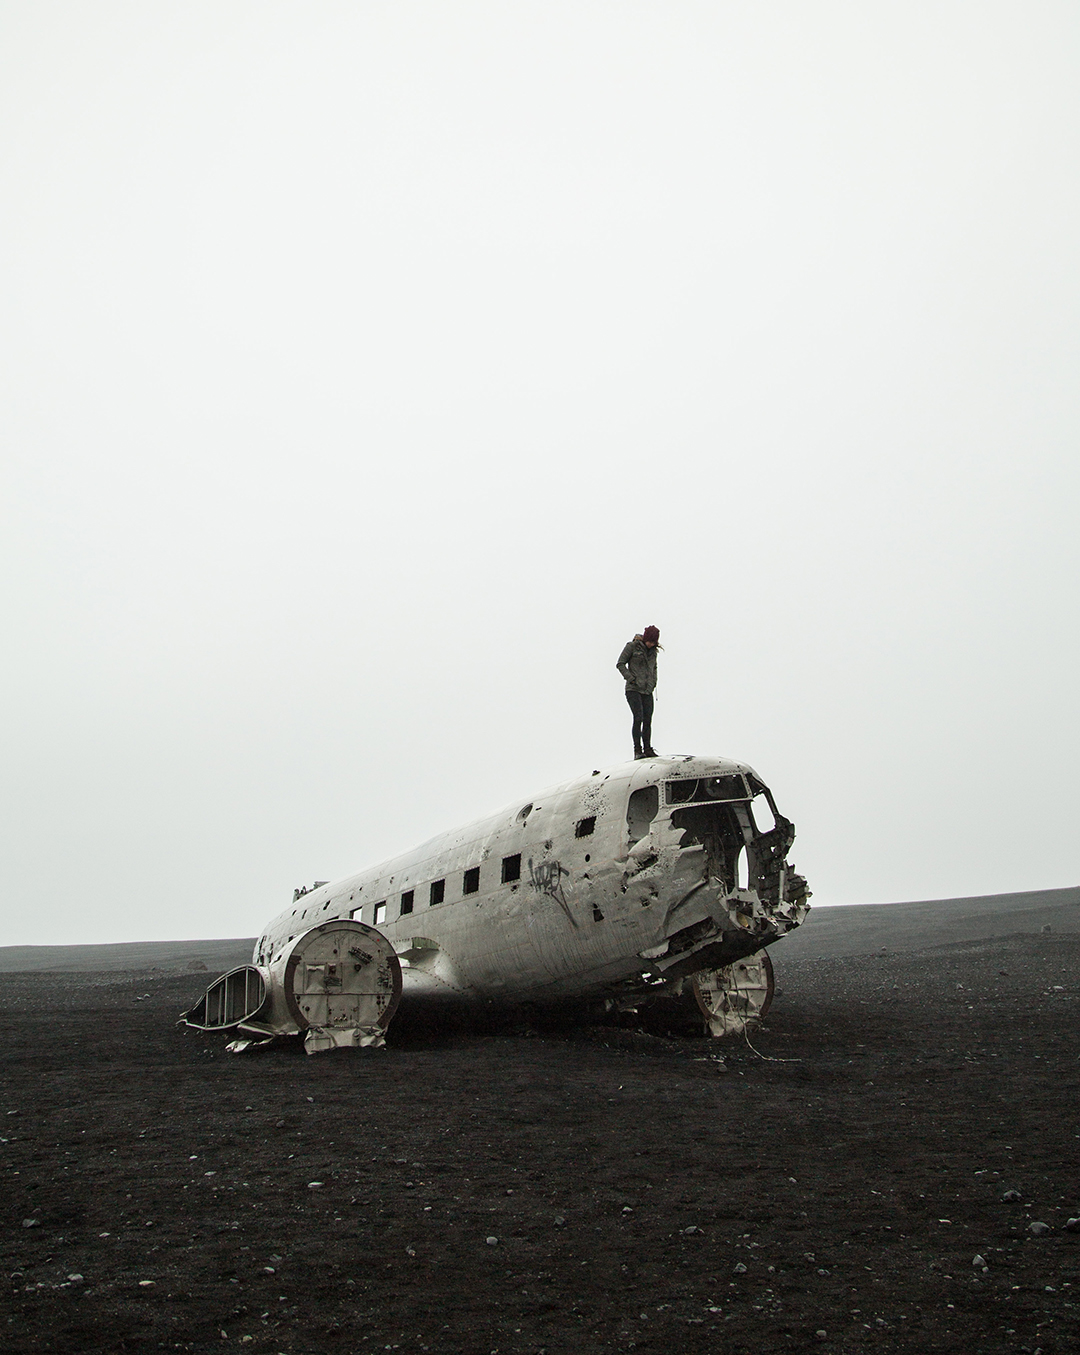 plane wreck iceland standing on top